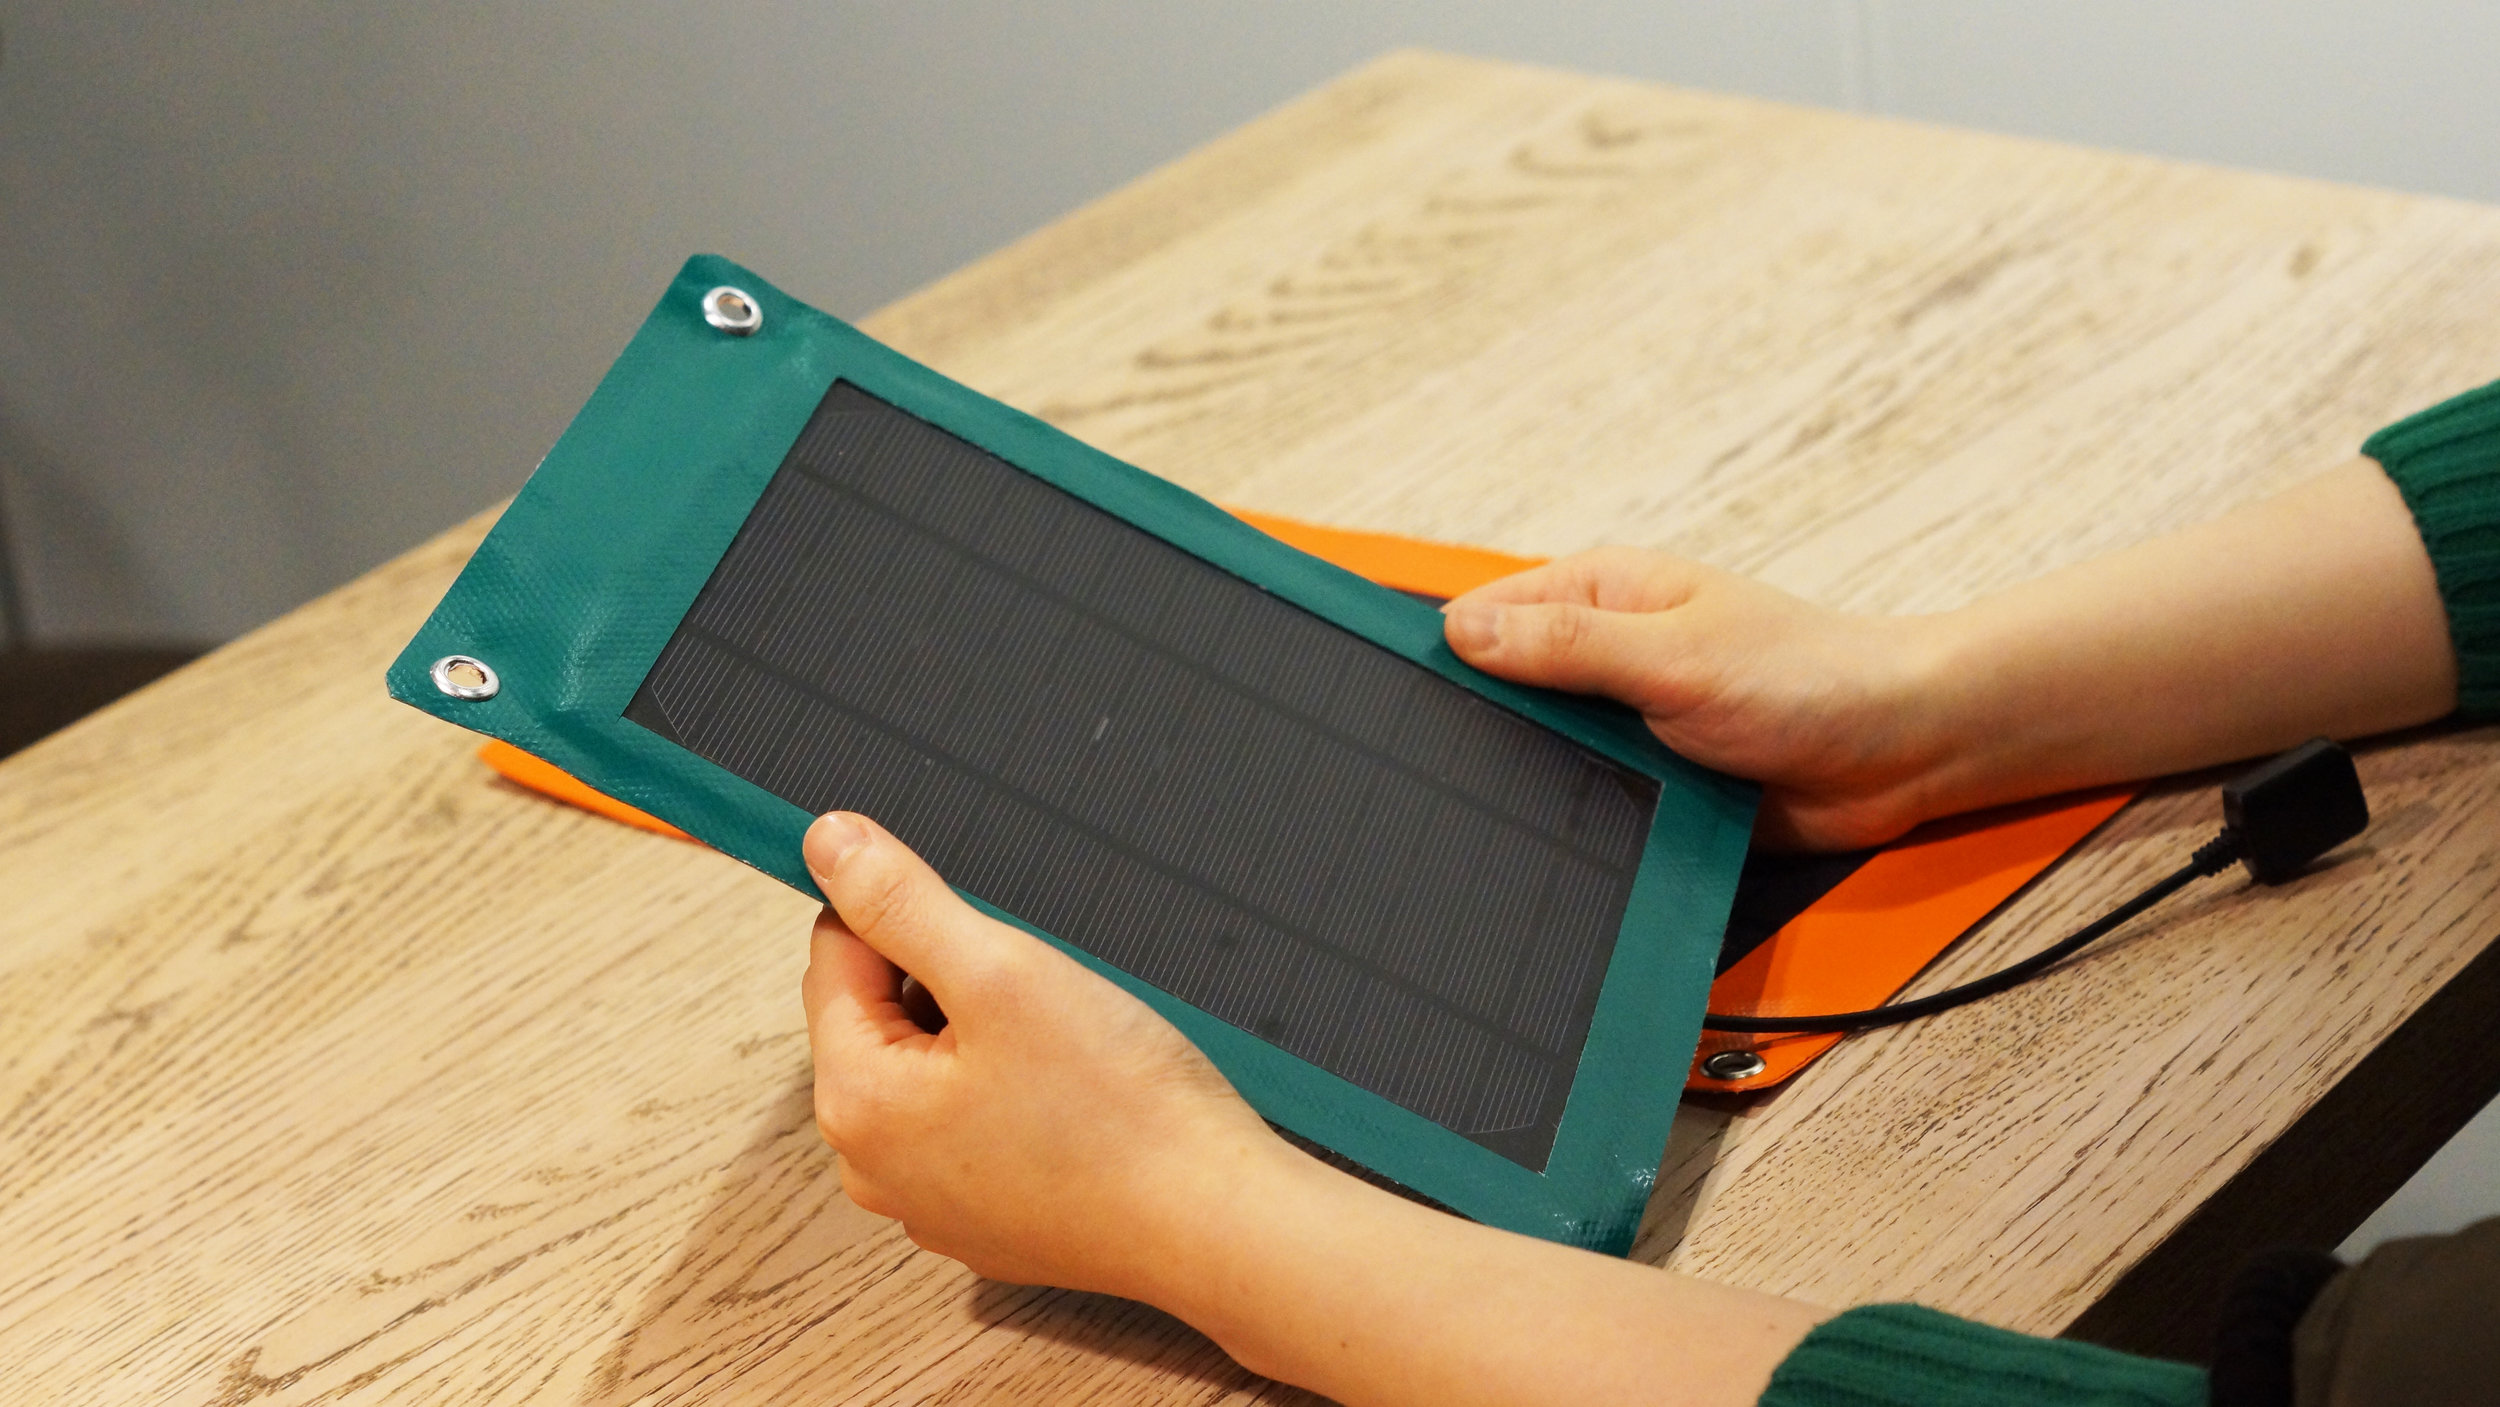 DIY SOLAR CHARGER KIT. - soon available for purchase.